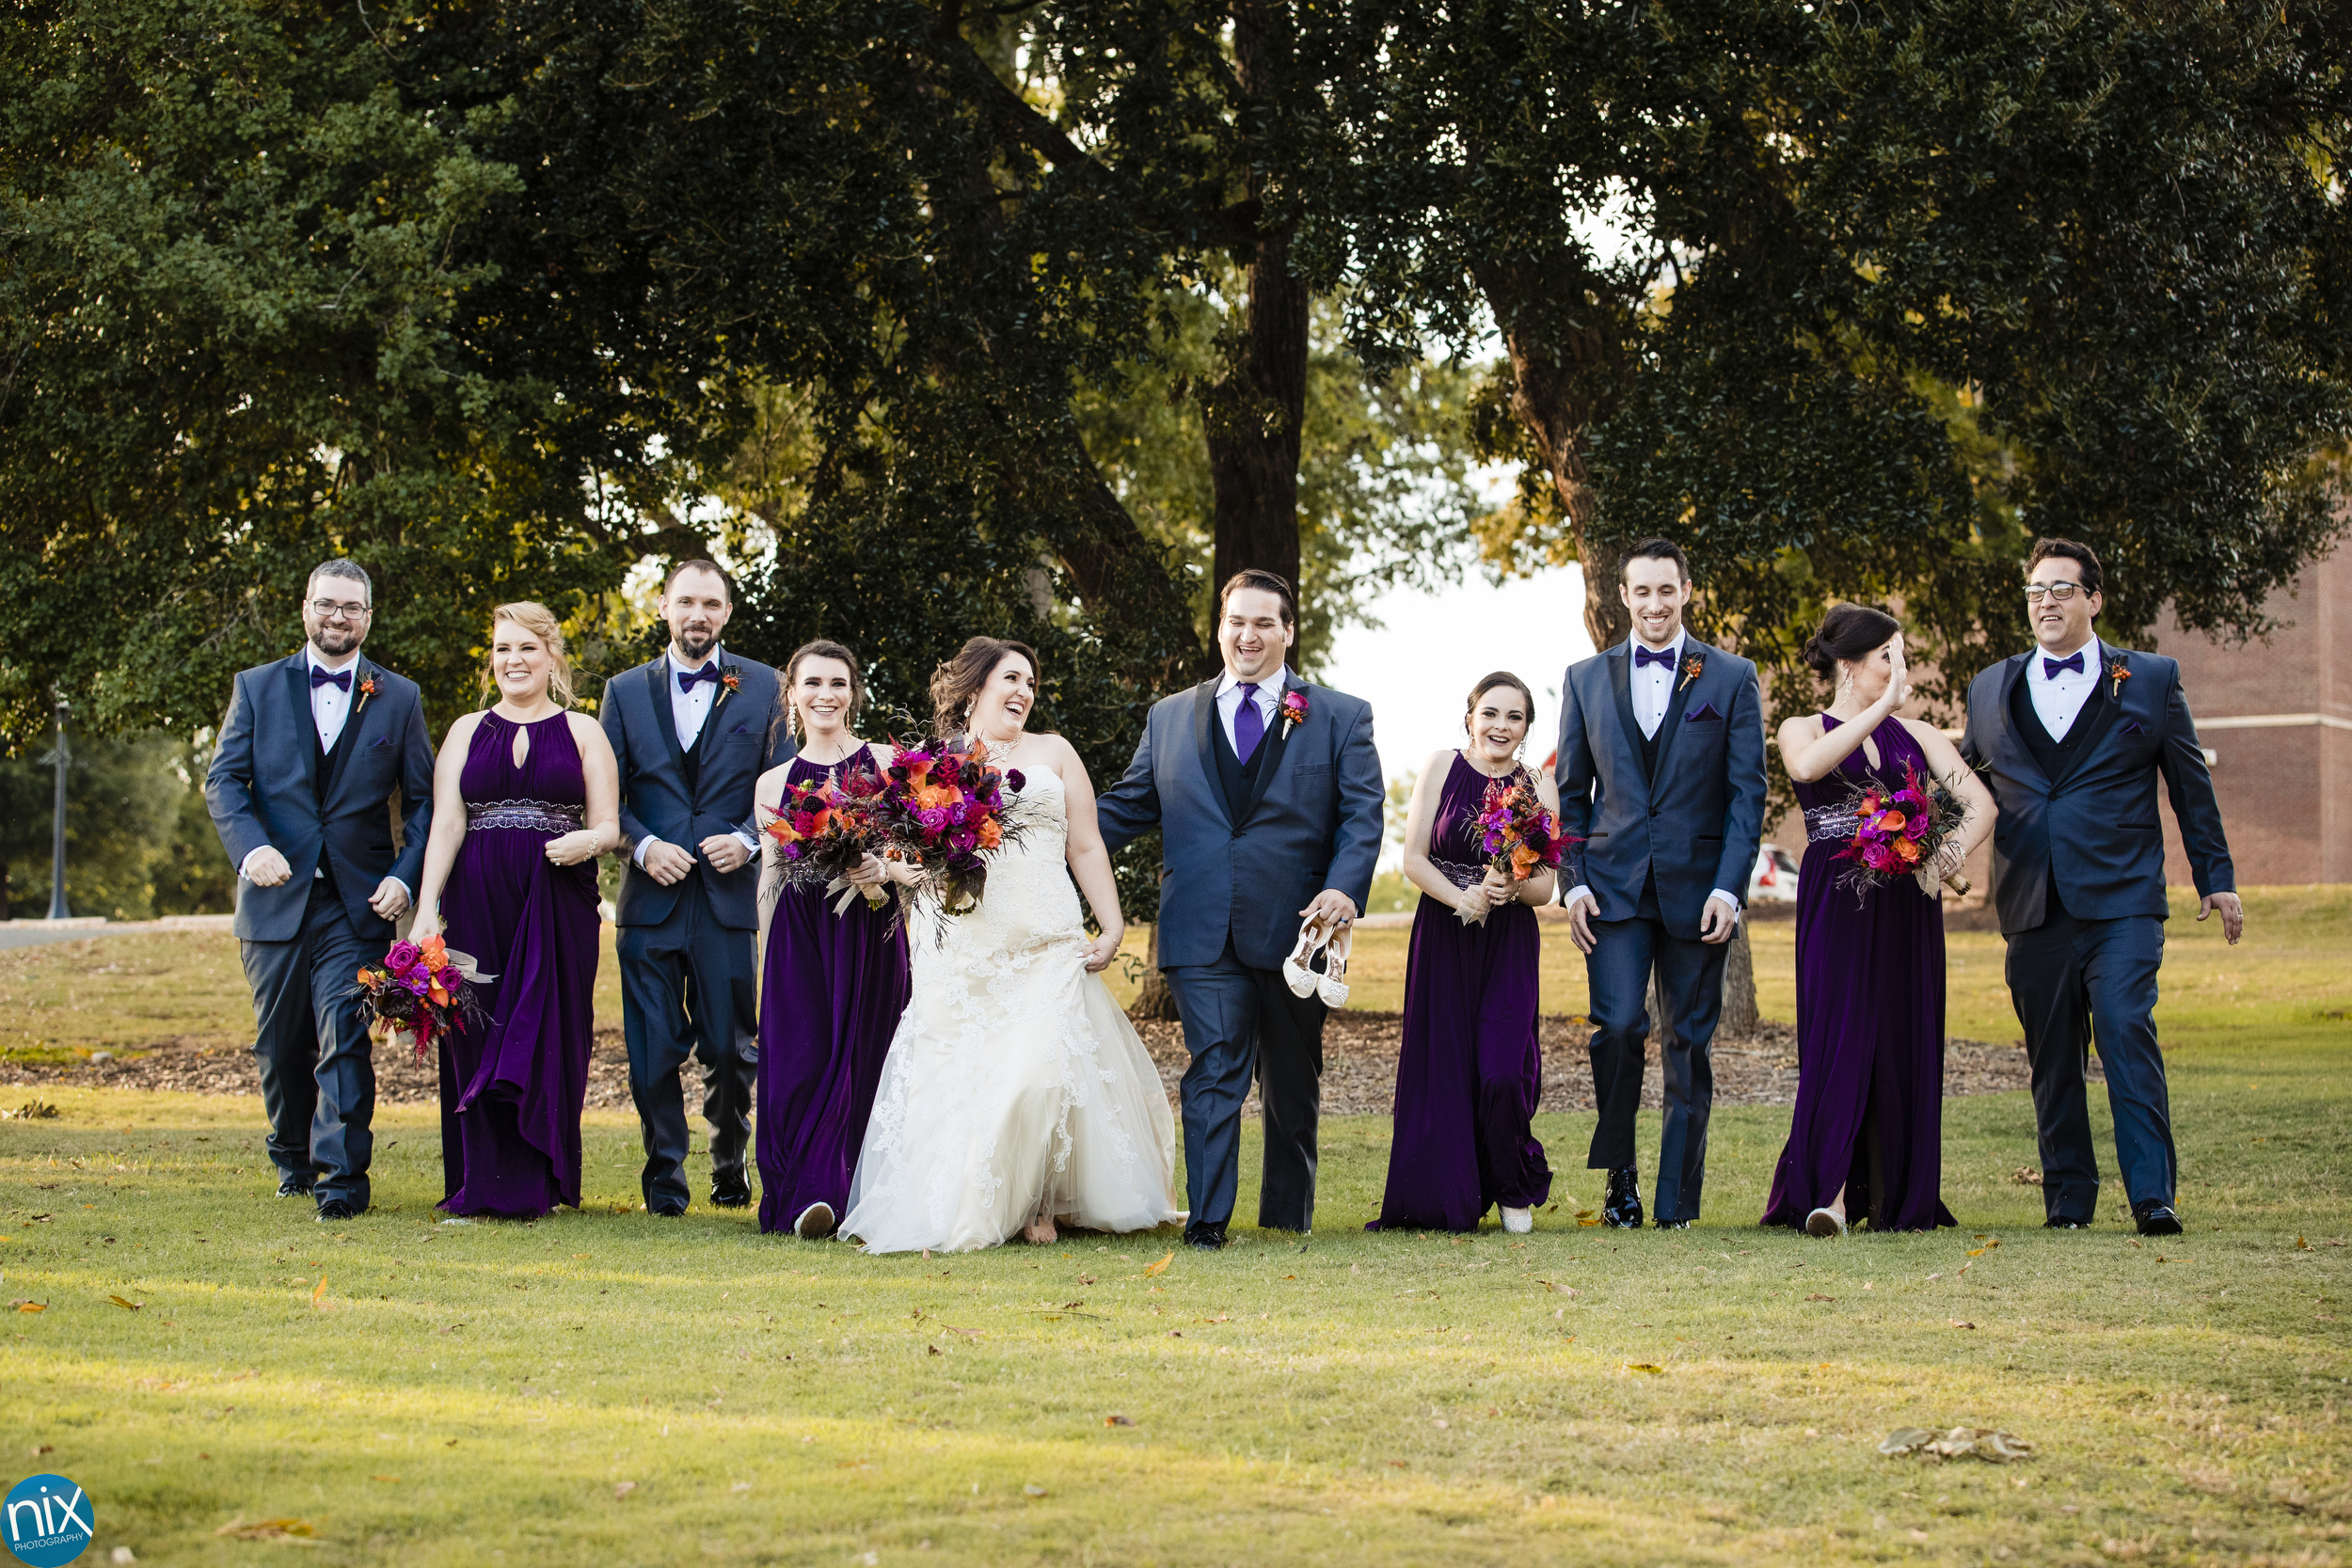 wedding party at Whinthrop University.jpg